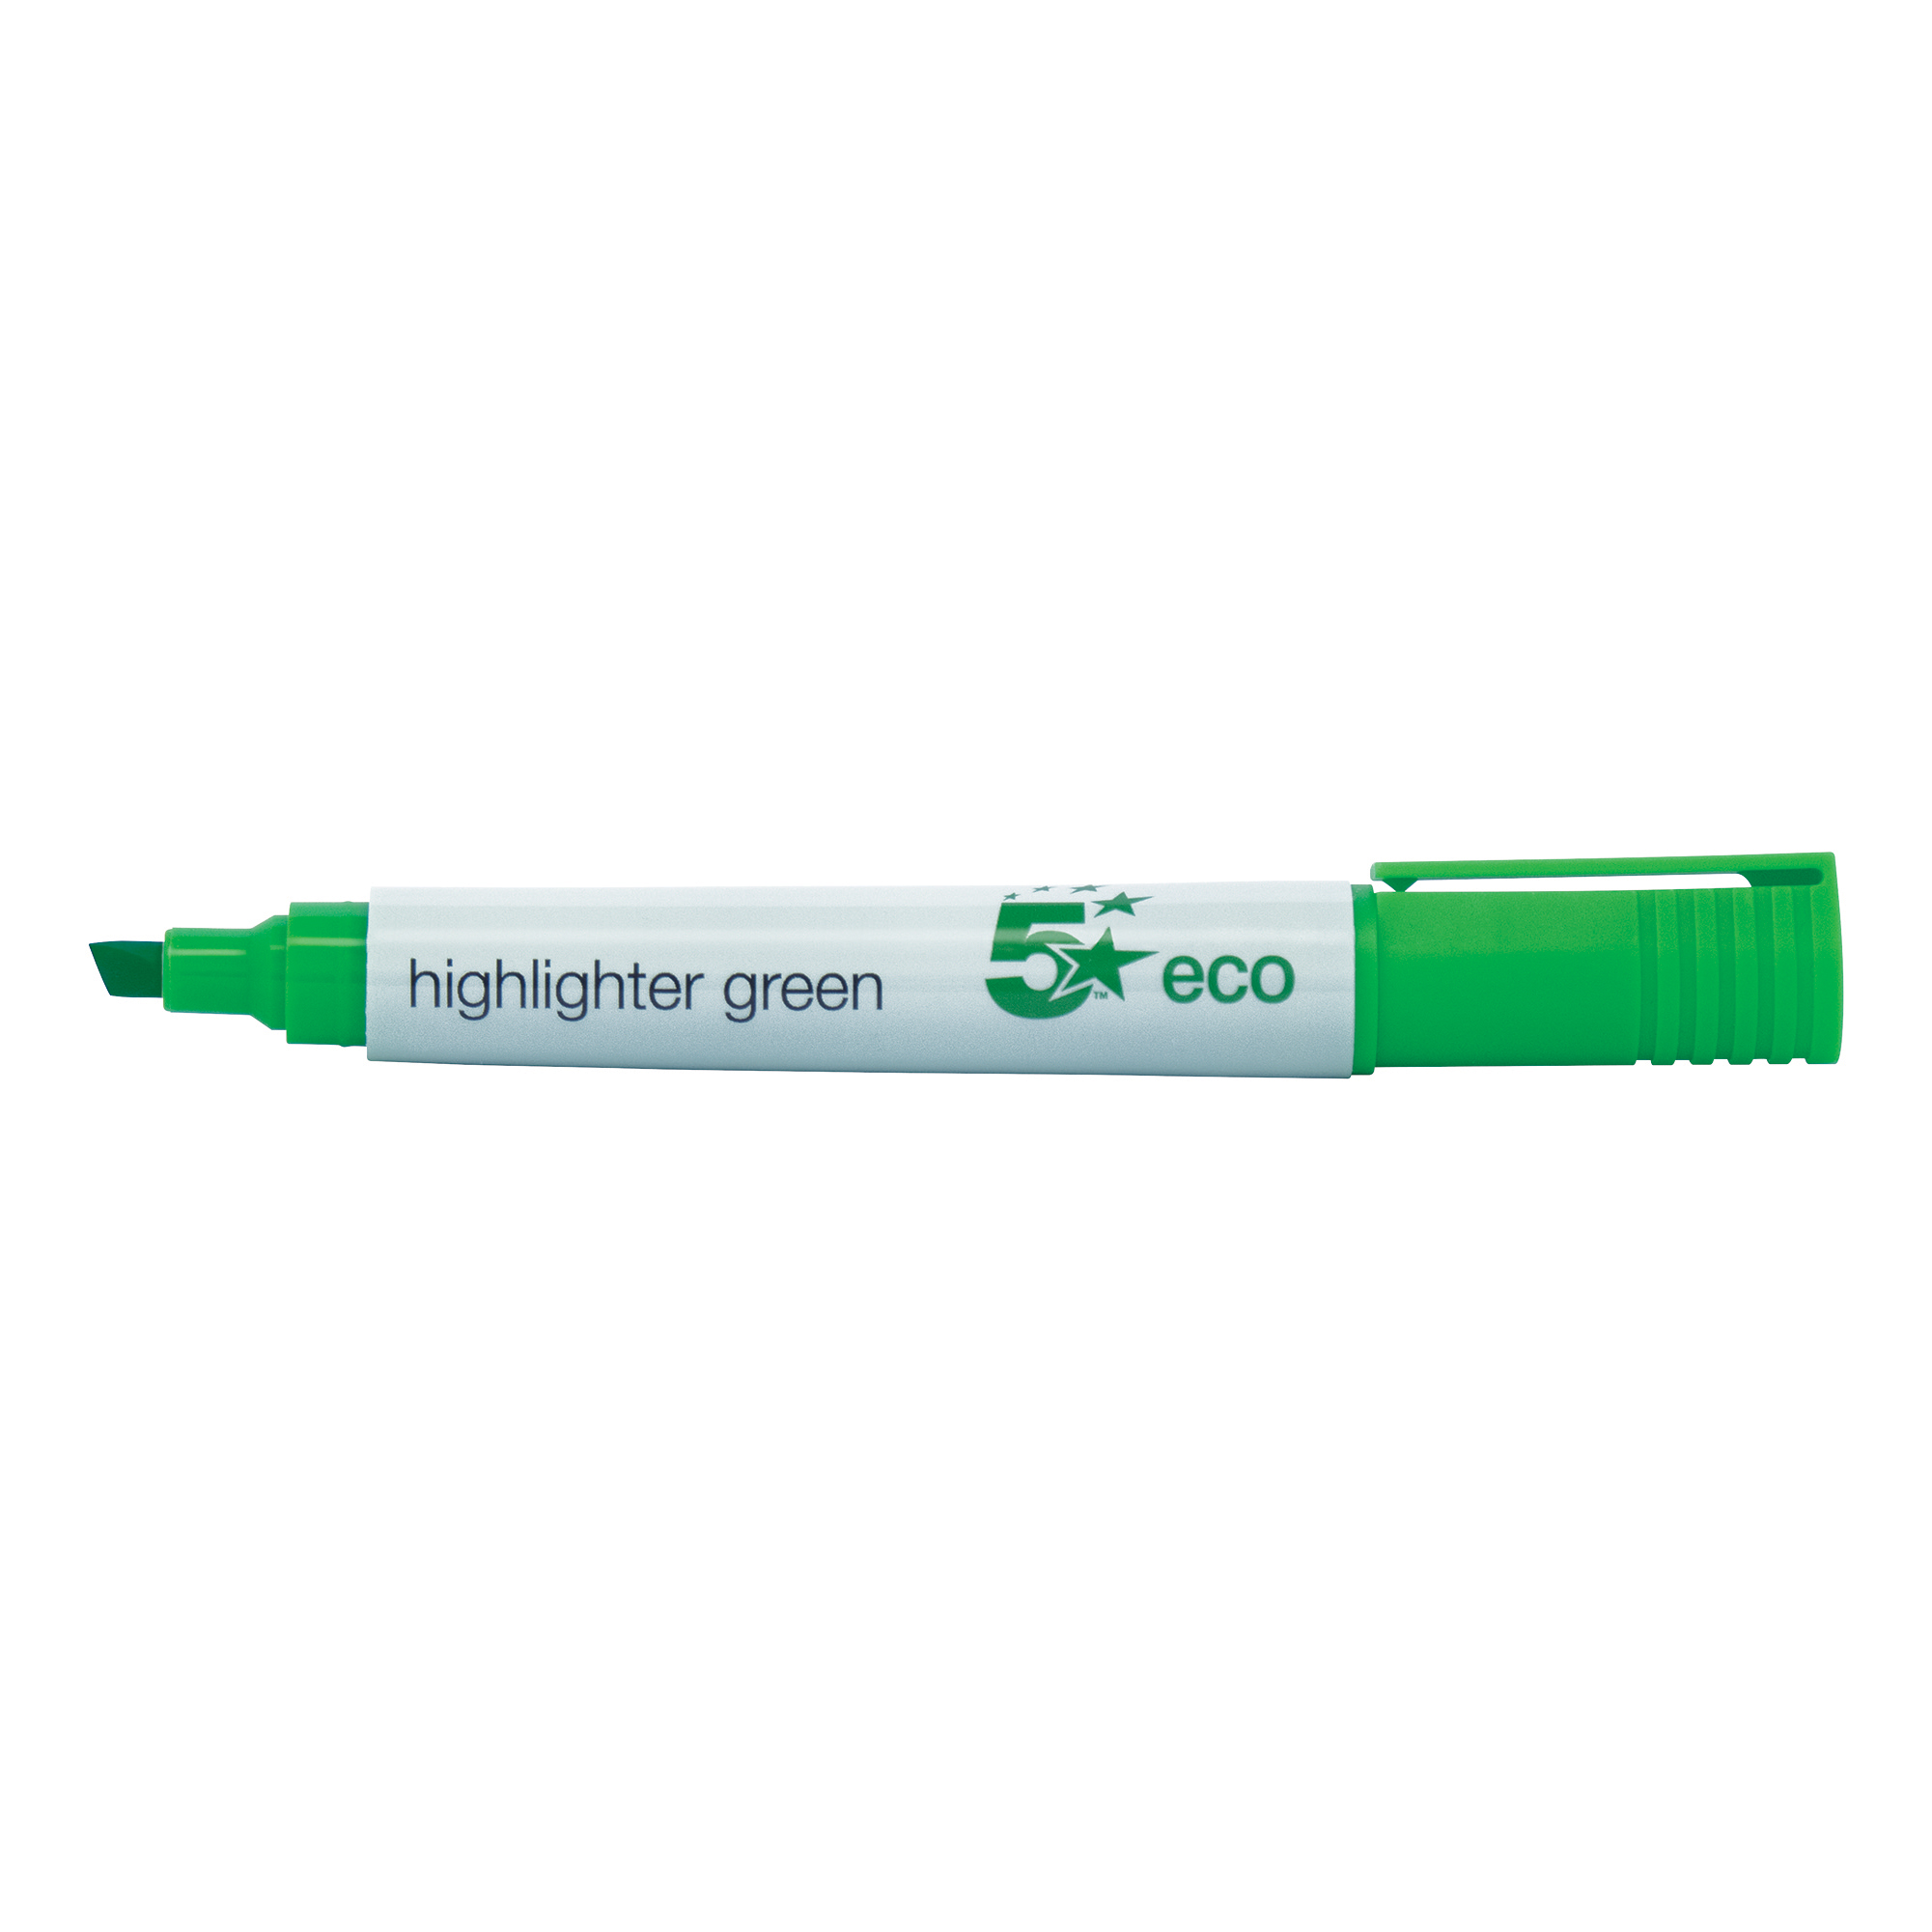 5 Star Eco Highlighter Chisel Tip 1-5mm Line Green Pack 10